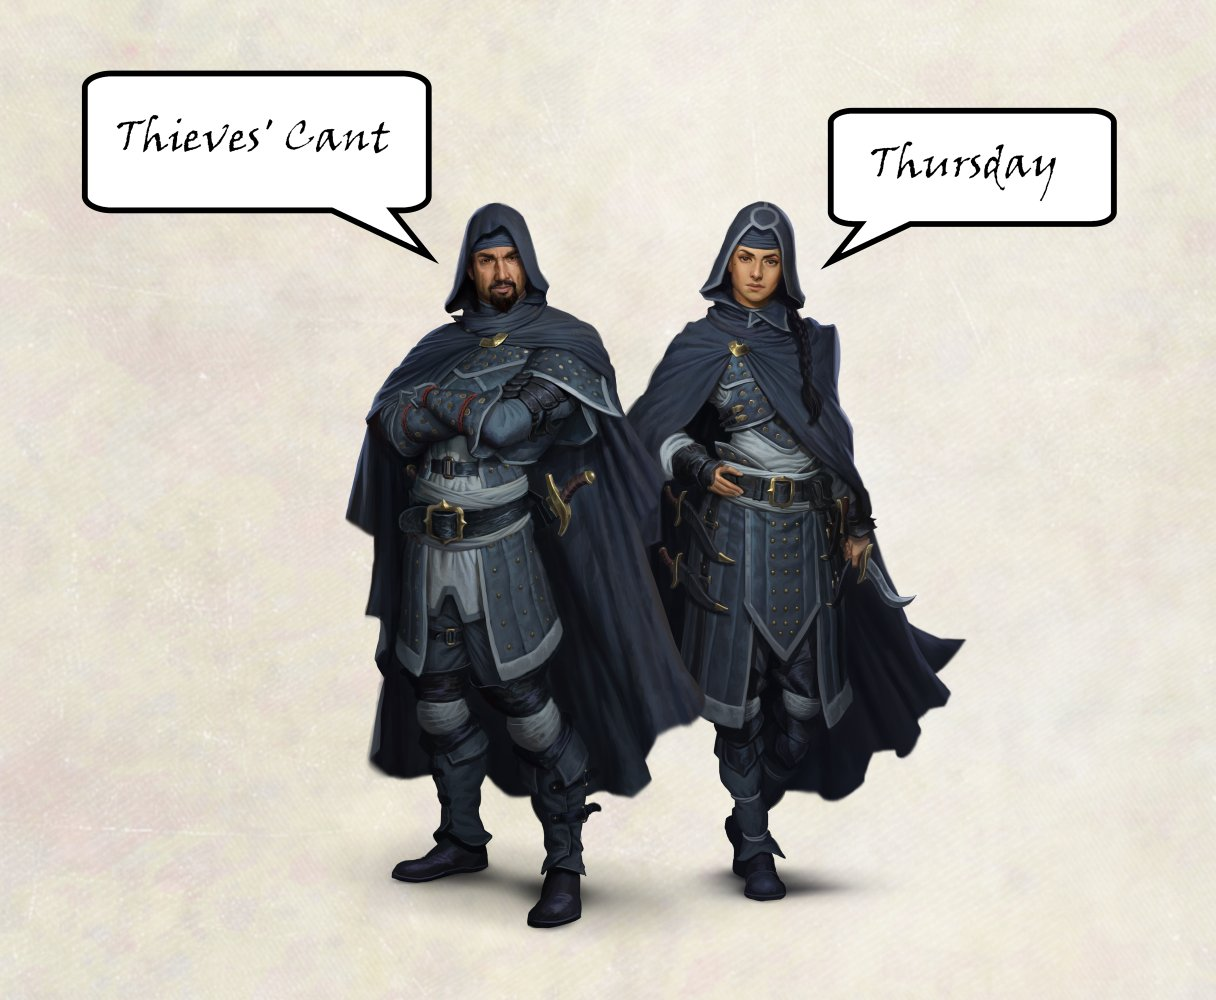 Arcana Games On Twitter Gene S Thieves Cant Thursday Stone Silver You Can Get Gene S Complete Guide Here For Free Https T Co S6bdppdh1m Dnd 5e Rpg Dungeonsanddragons Roleplaying Rogue Free Https T Co Giw3fmrvx3